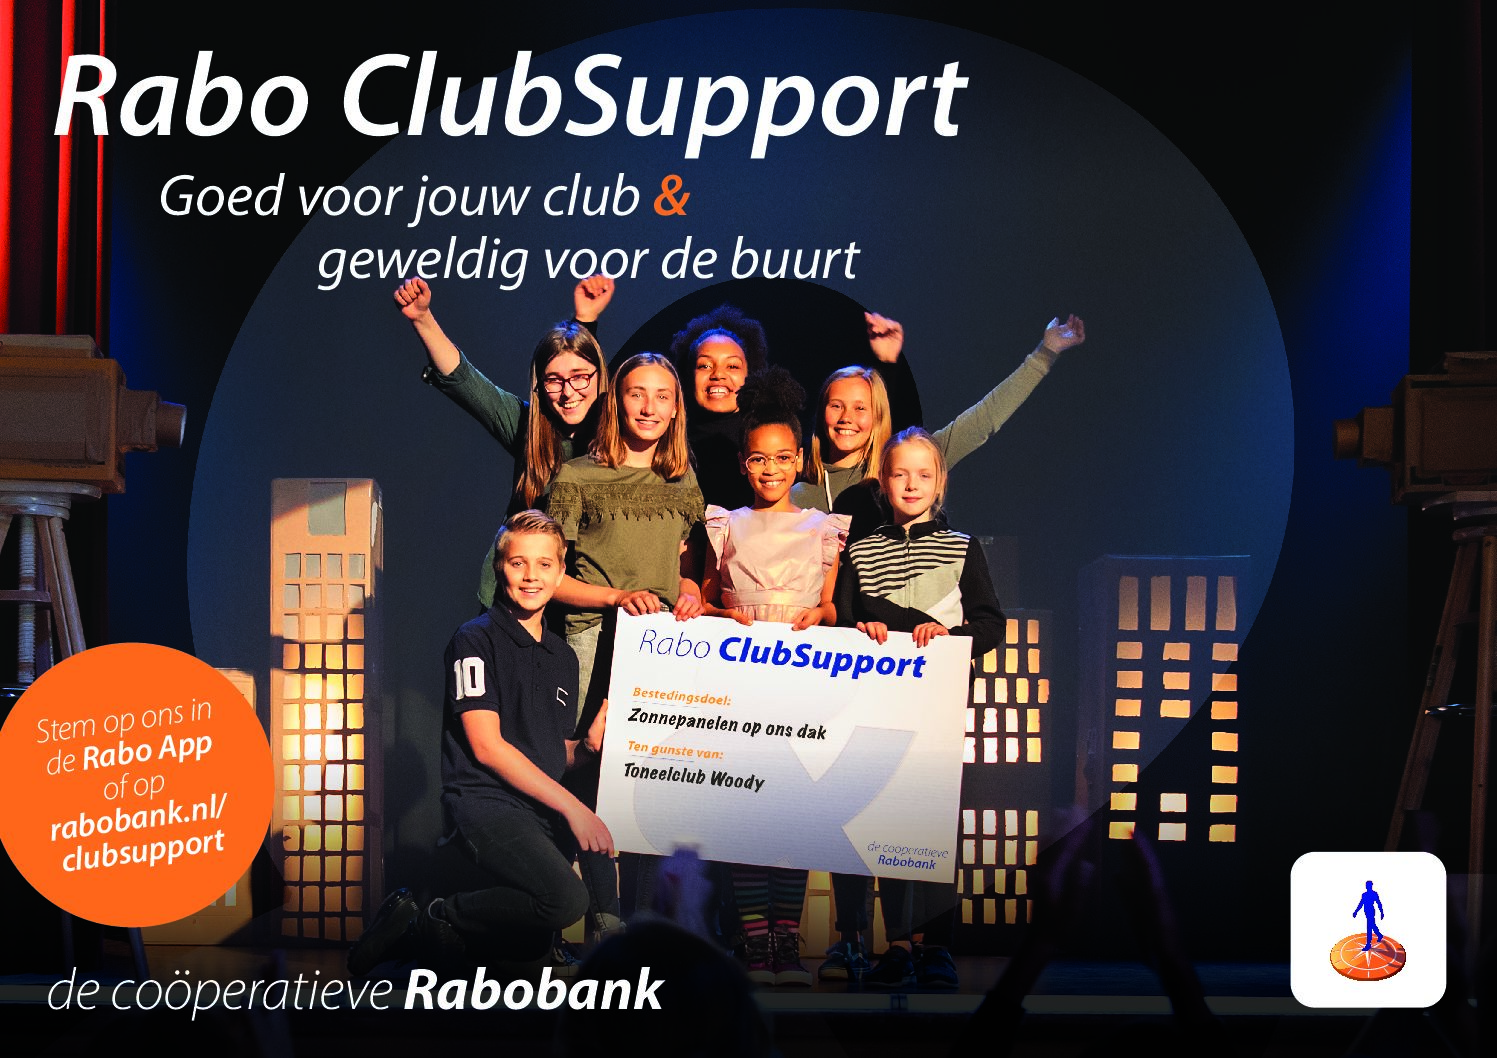 RABO_ClubSupport_Adv_a4_Liggend_1_Woody_F02_no_Crops